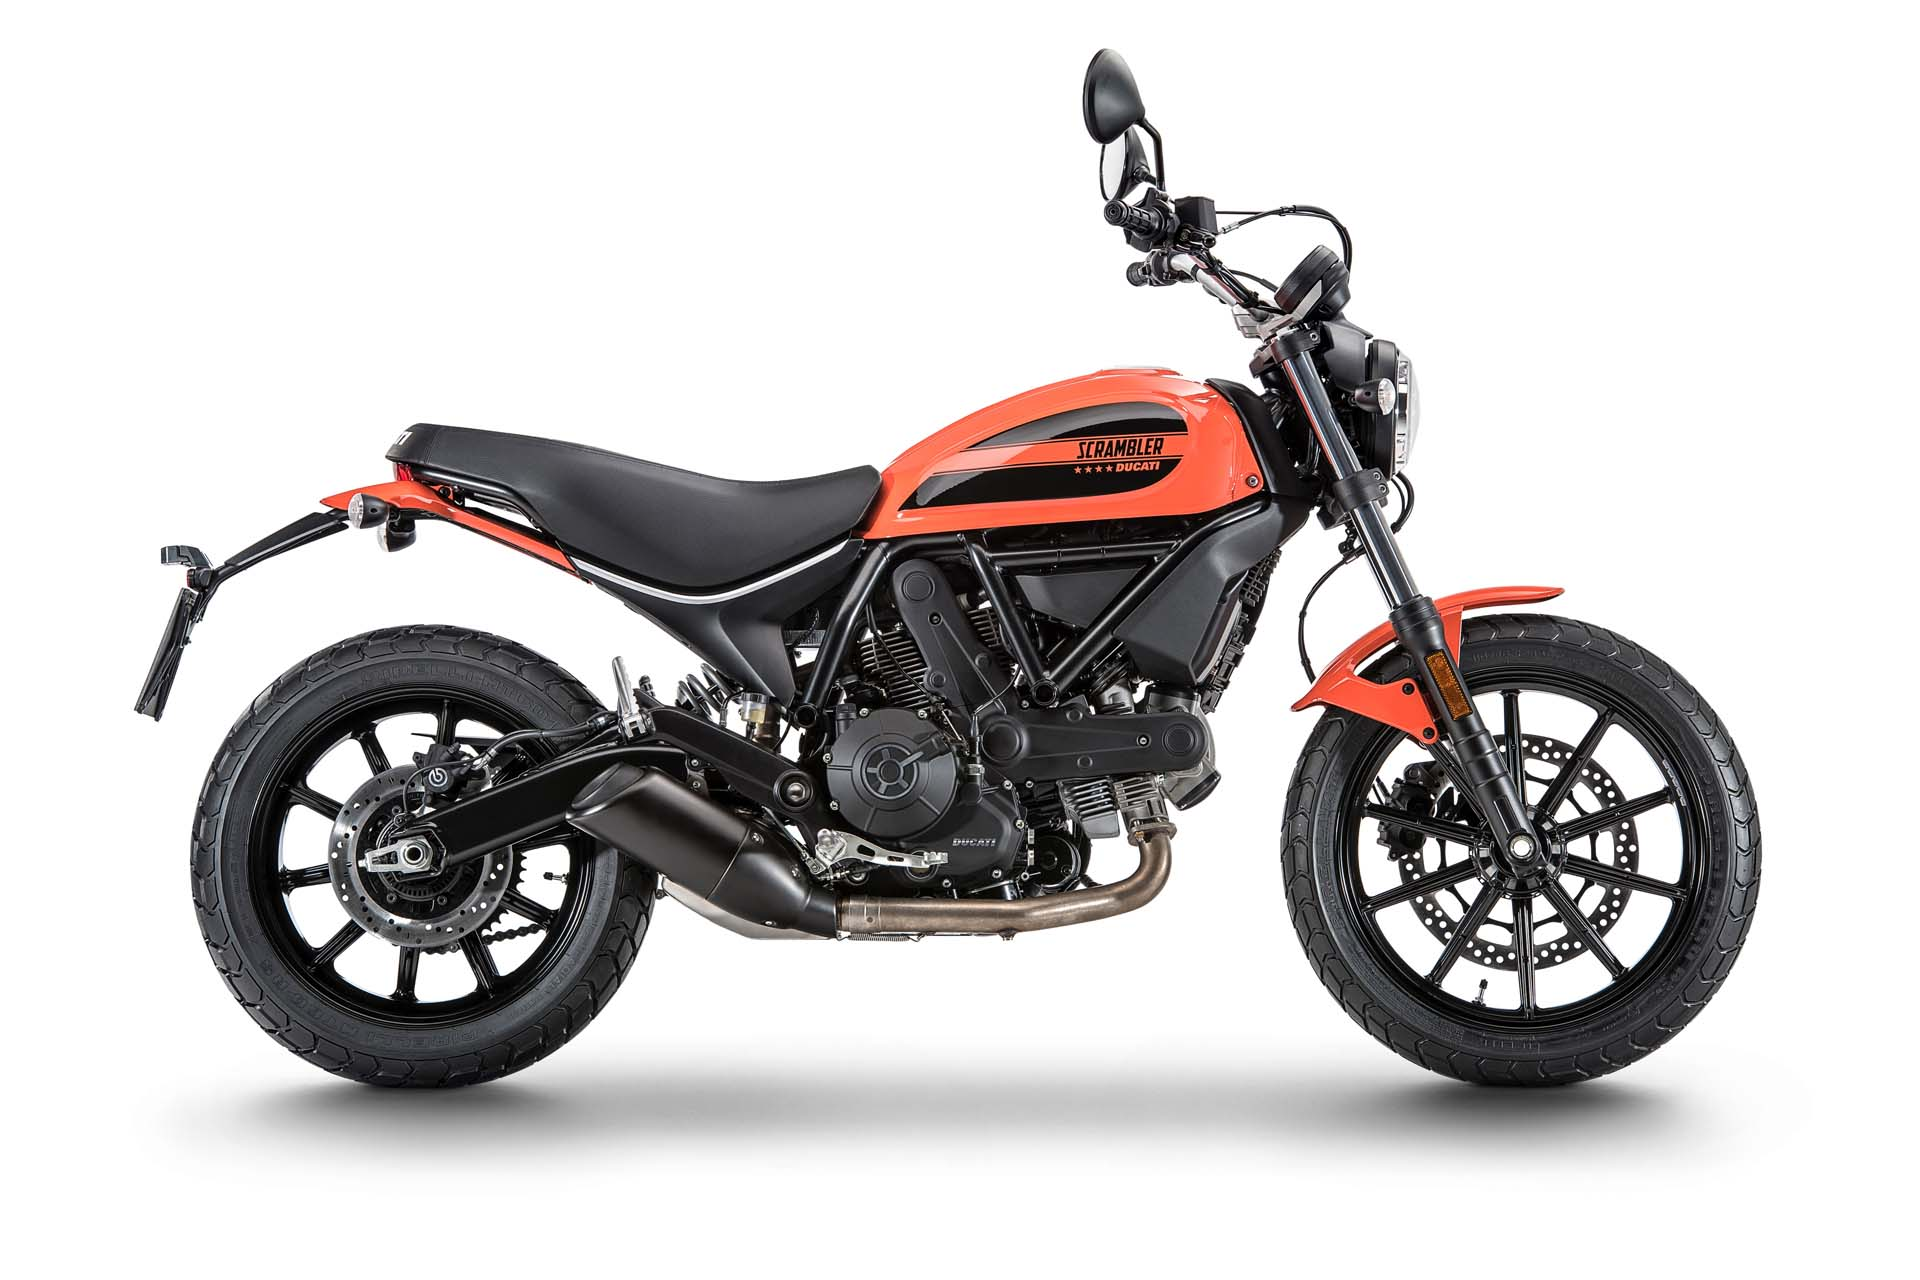 What has 400 cc, 41 hp and will make Ducati a hell of a lot of money in 2016? The Ducati Scrambler Sixty2. The latest addition to the wildly successful Scrambler range, this new entry-level bike with its diminutive 167-kg chassis looks like it will be more fun than a barrel of monkeys.